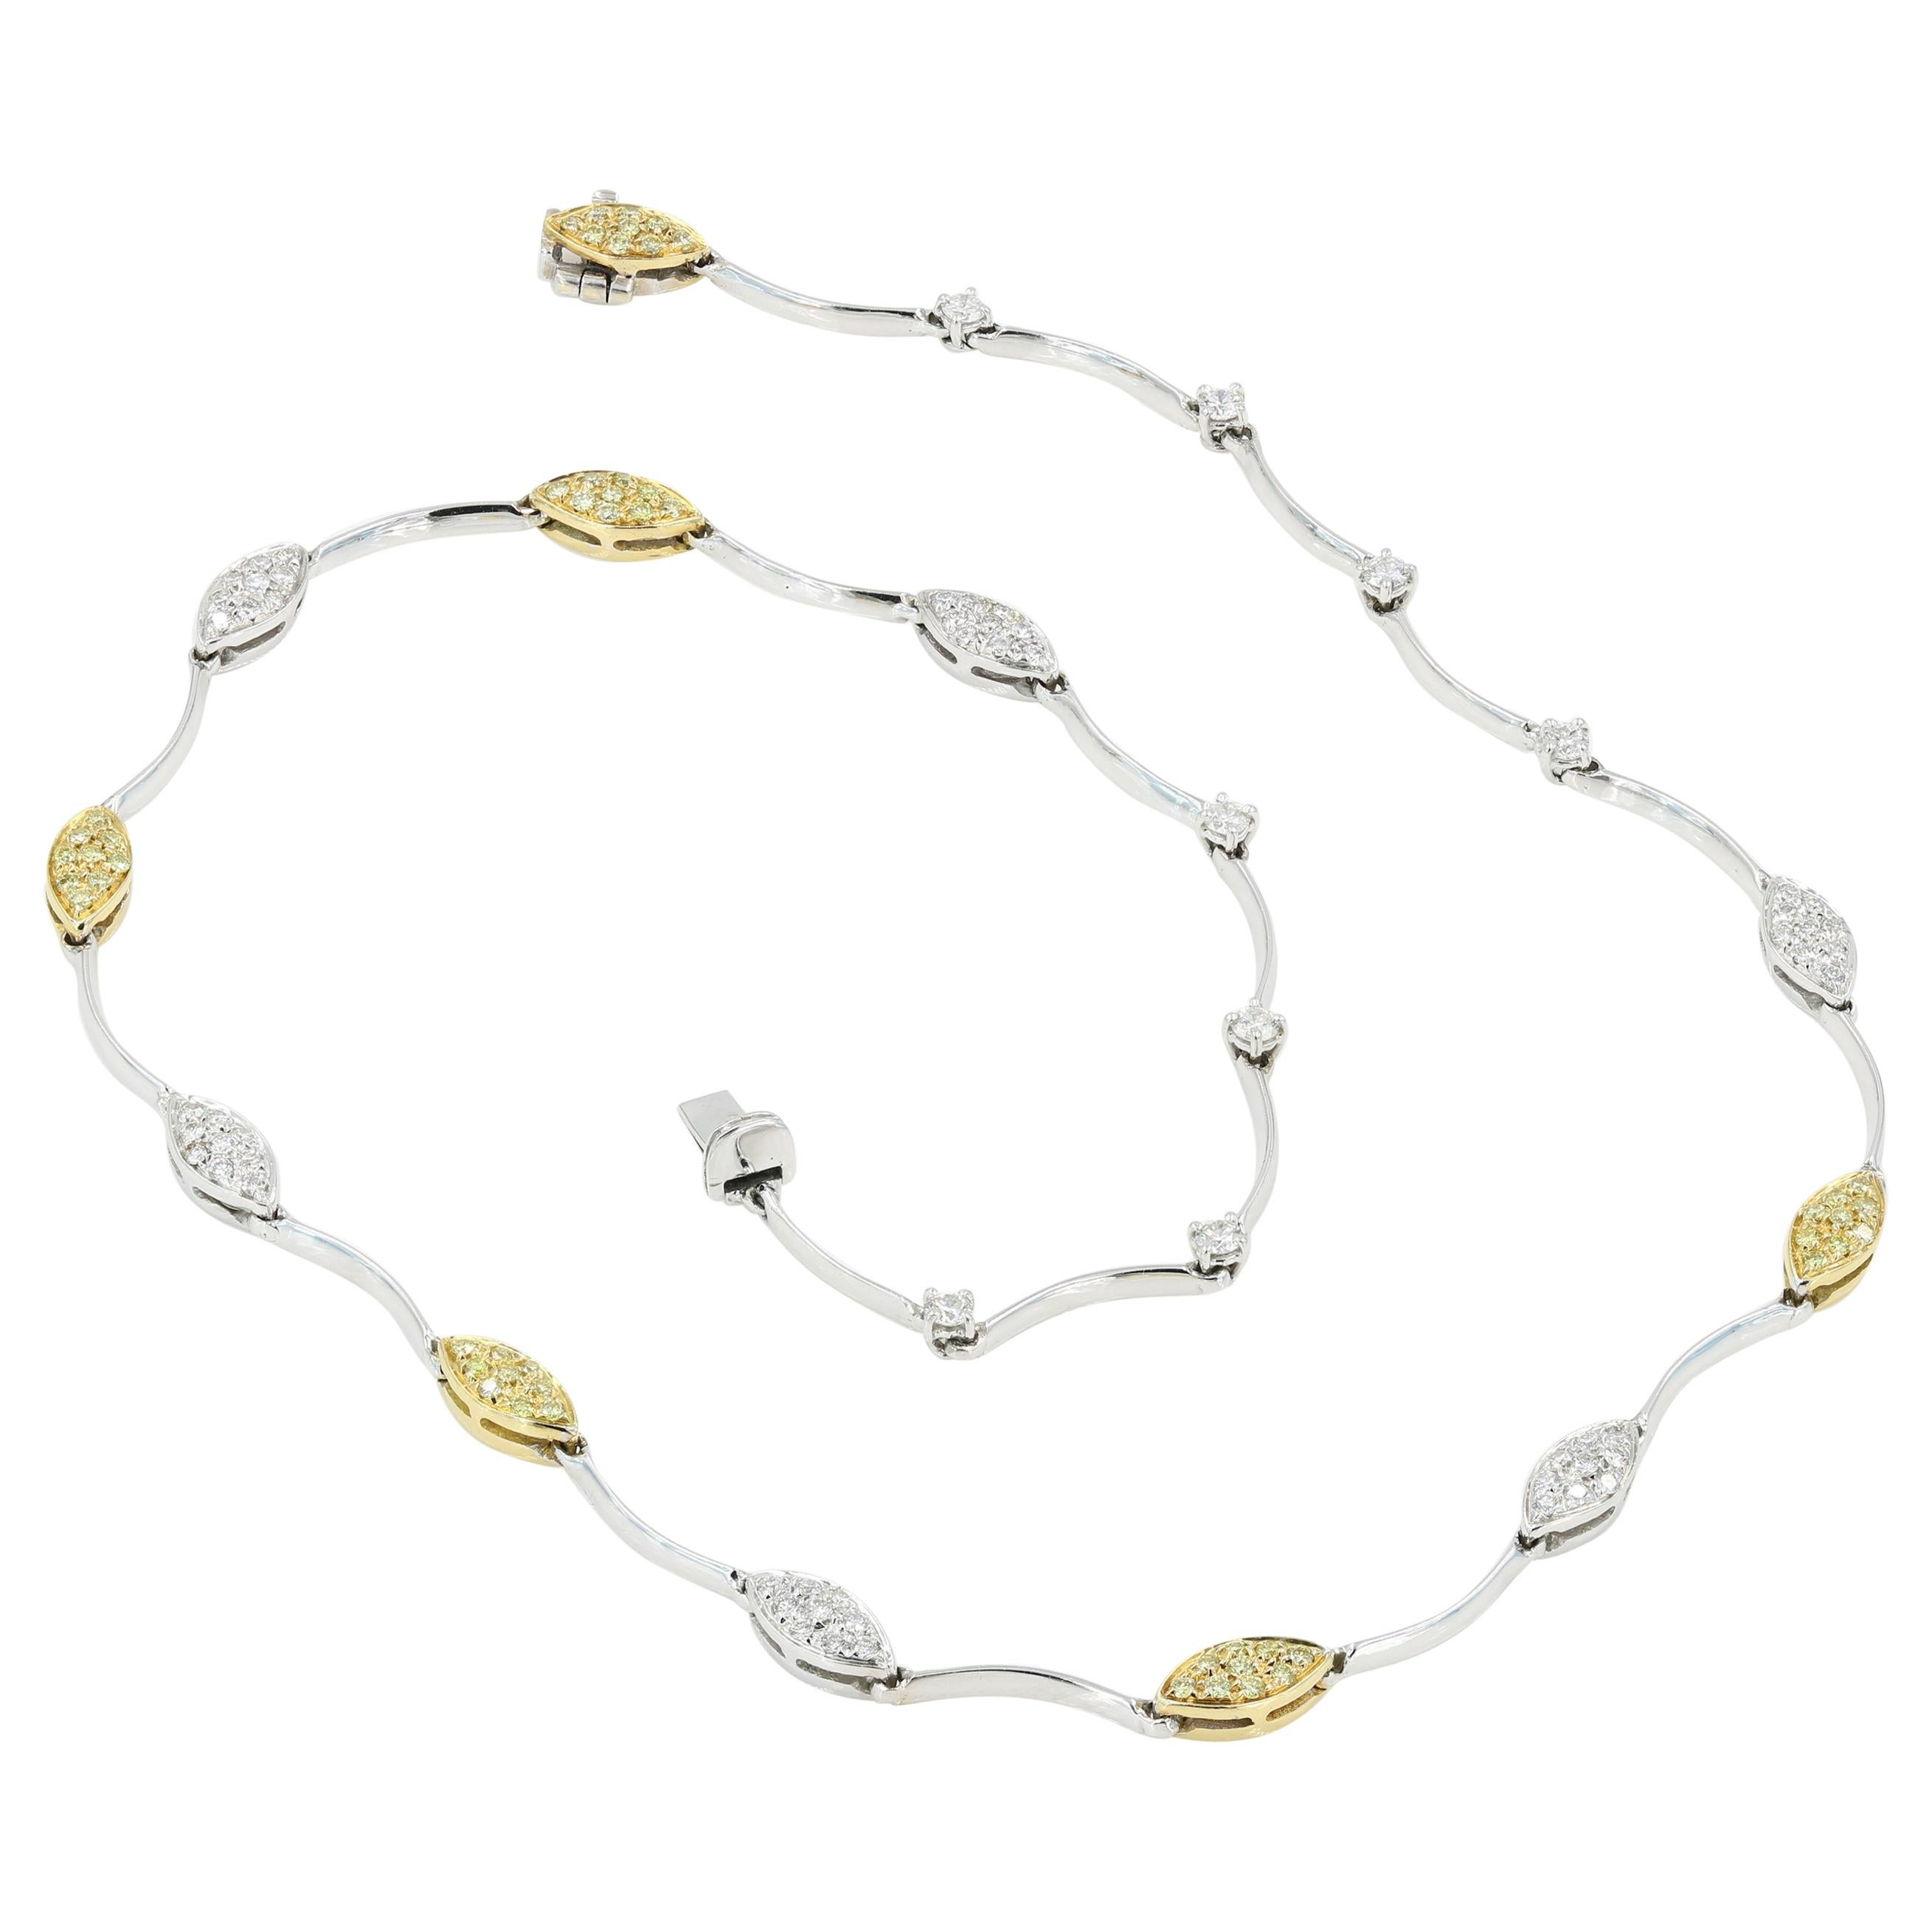 Italian 18kt White and Yellow Gold Necklace with Natural Yellow & White Diamonds